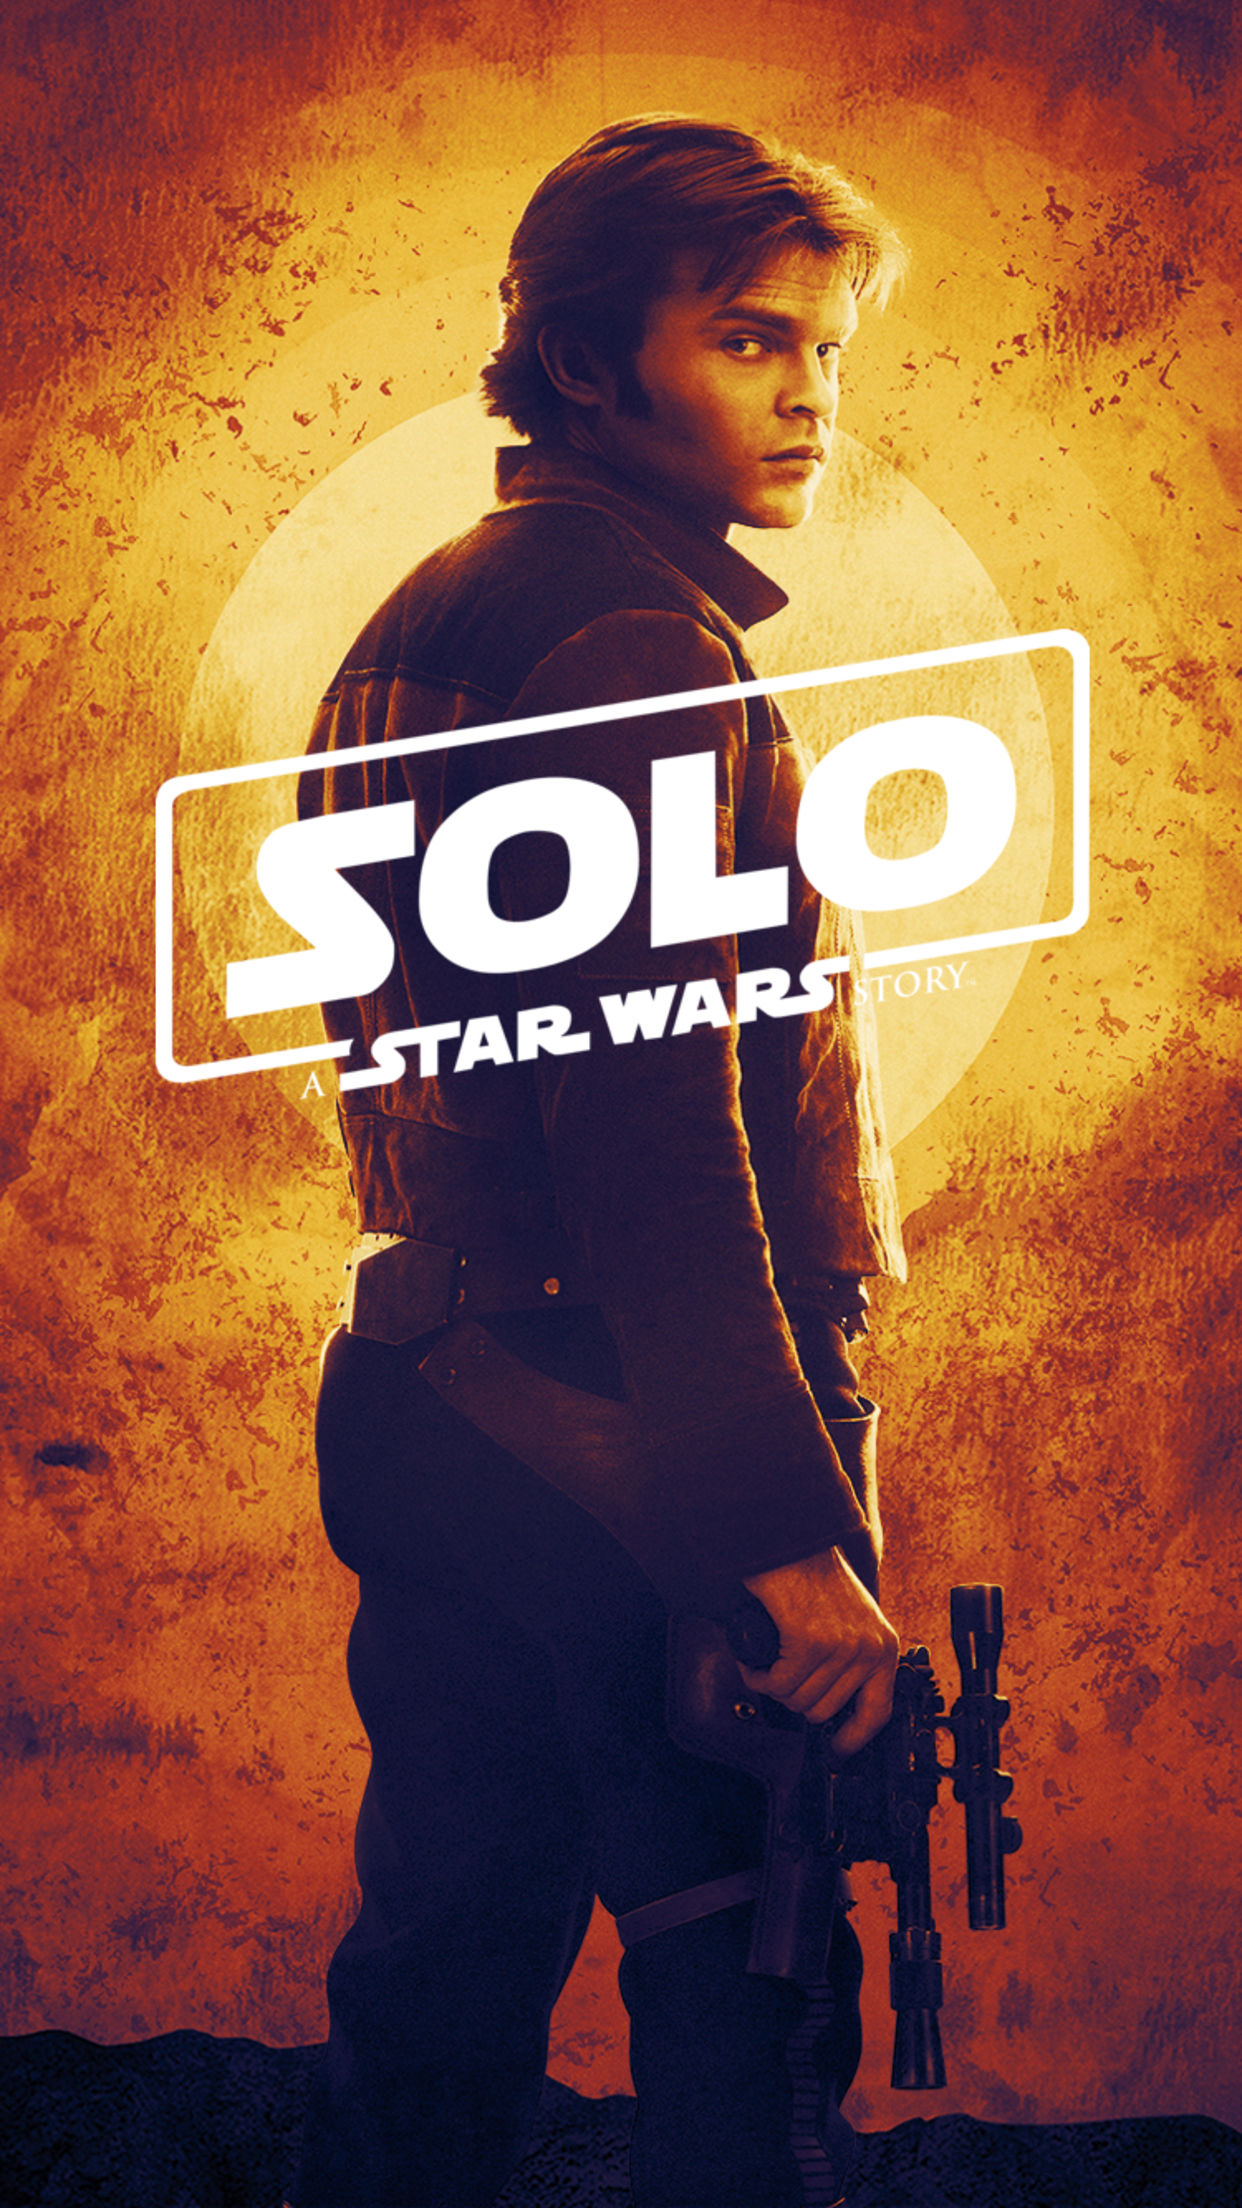 new solo a star wars story poster